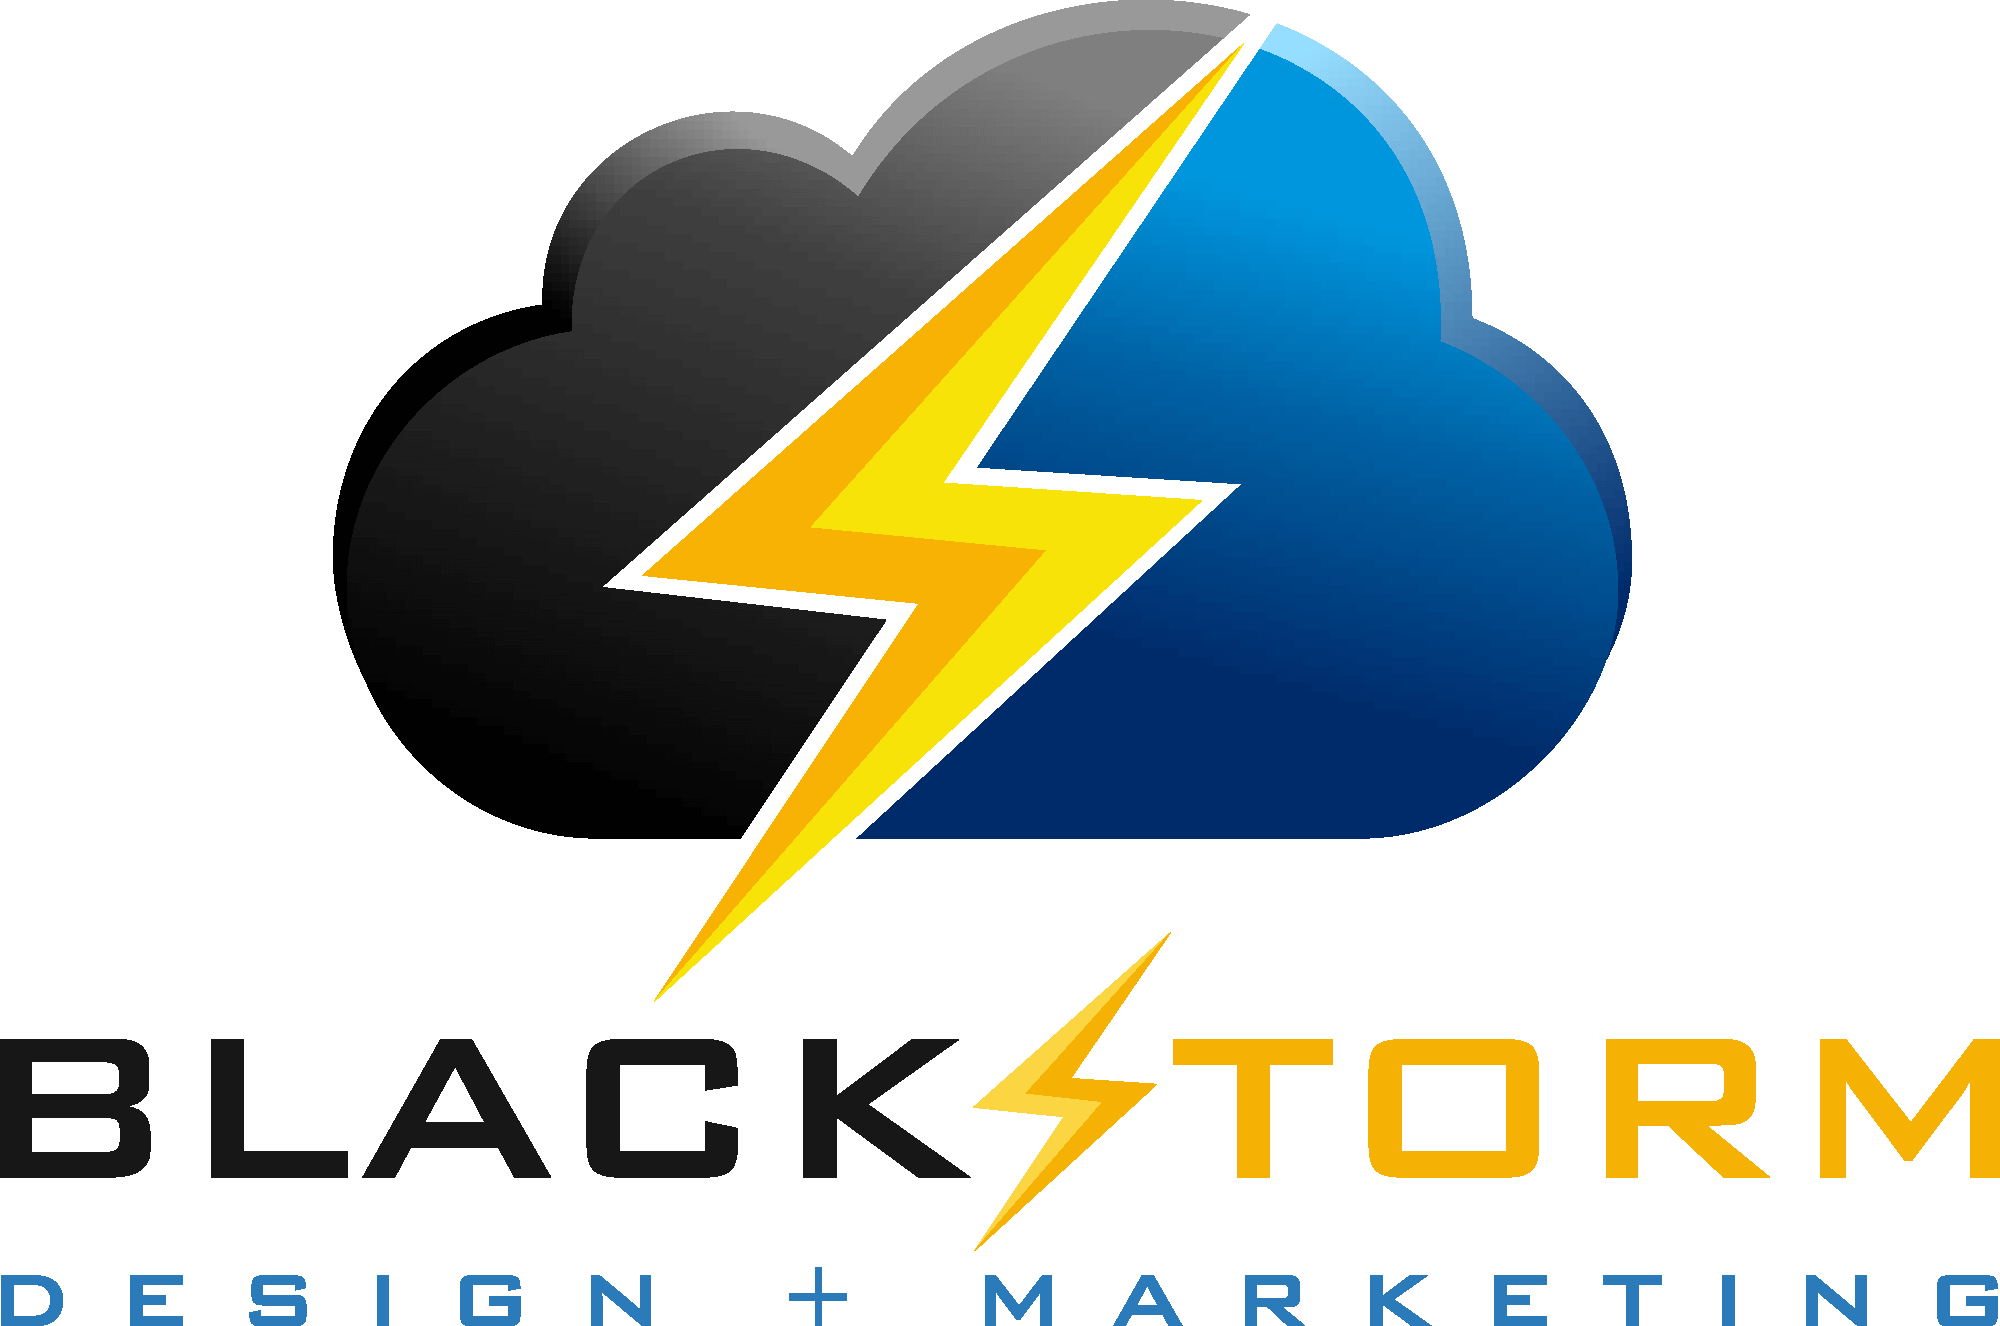 Blackstorm Design + Marketing Acquires Storm Guard Roofing & Construction as New Client